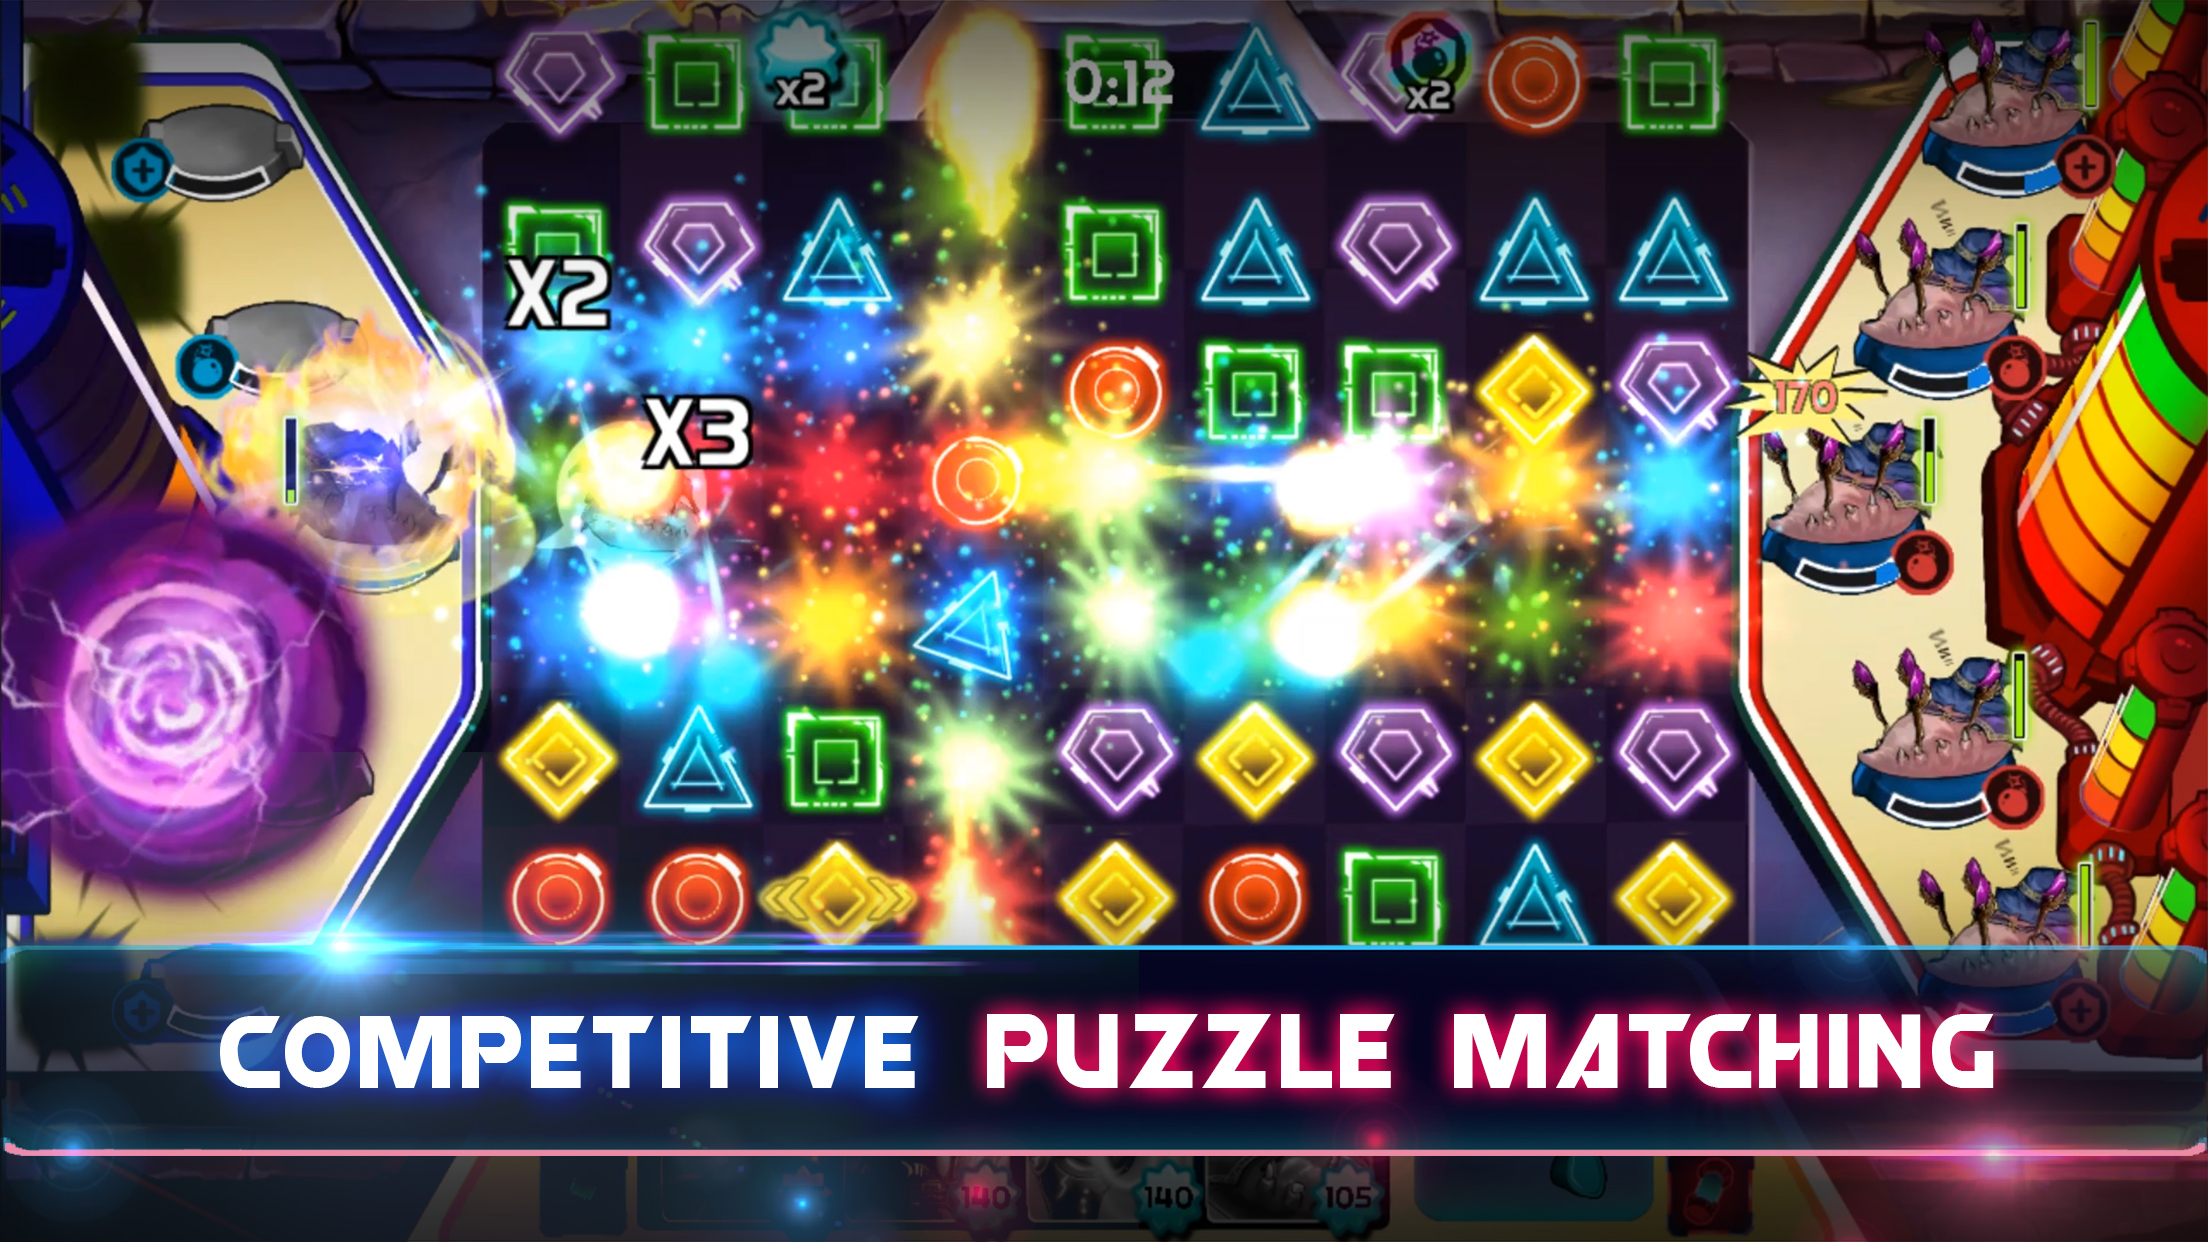 Promo competitivepuzzlematching